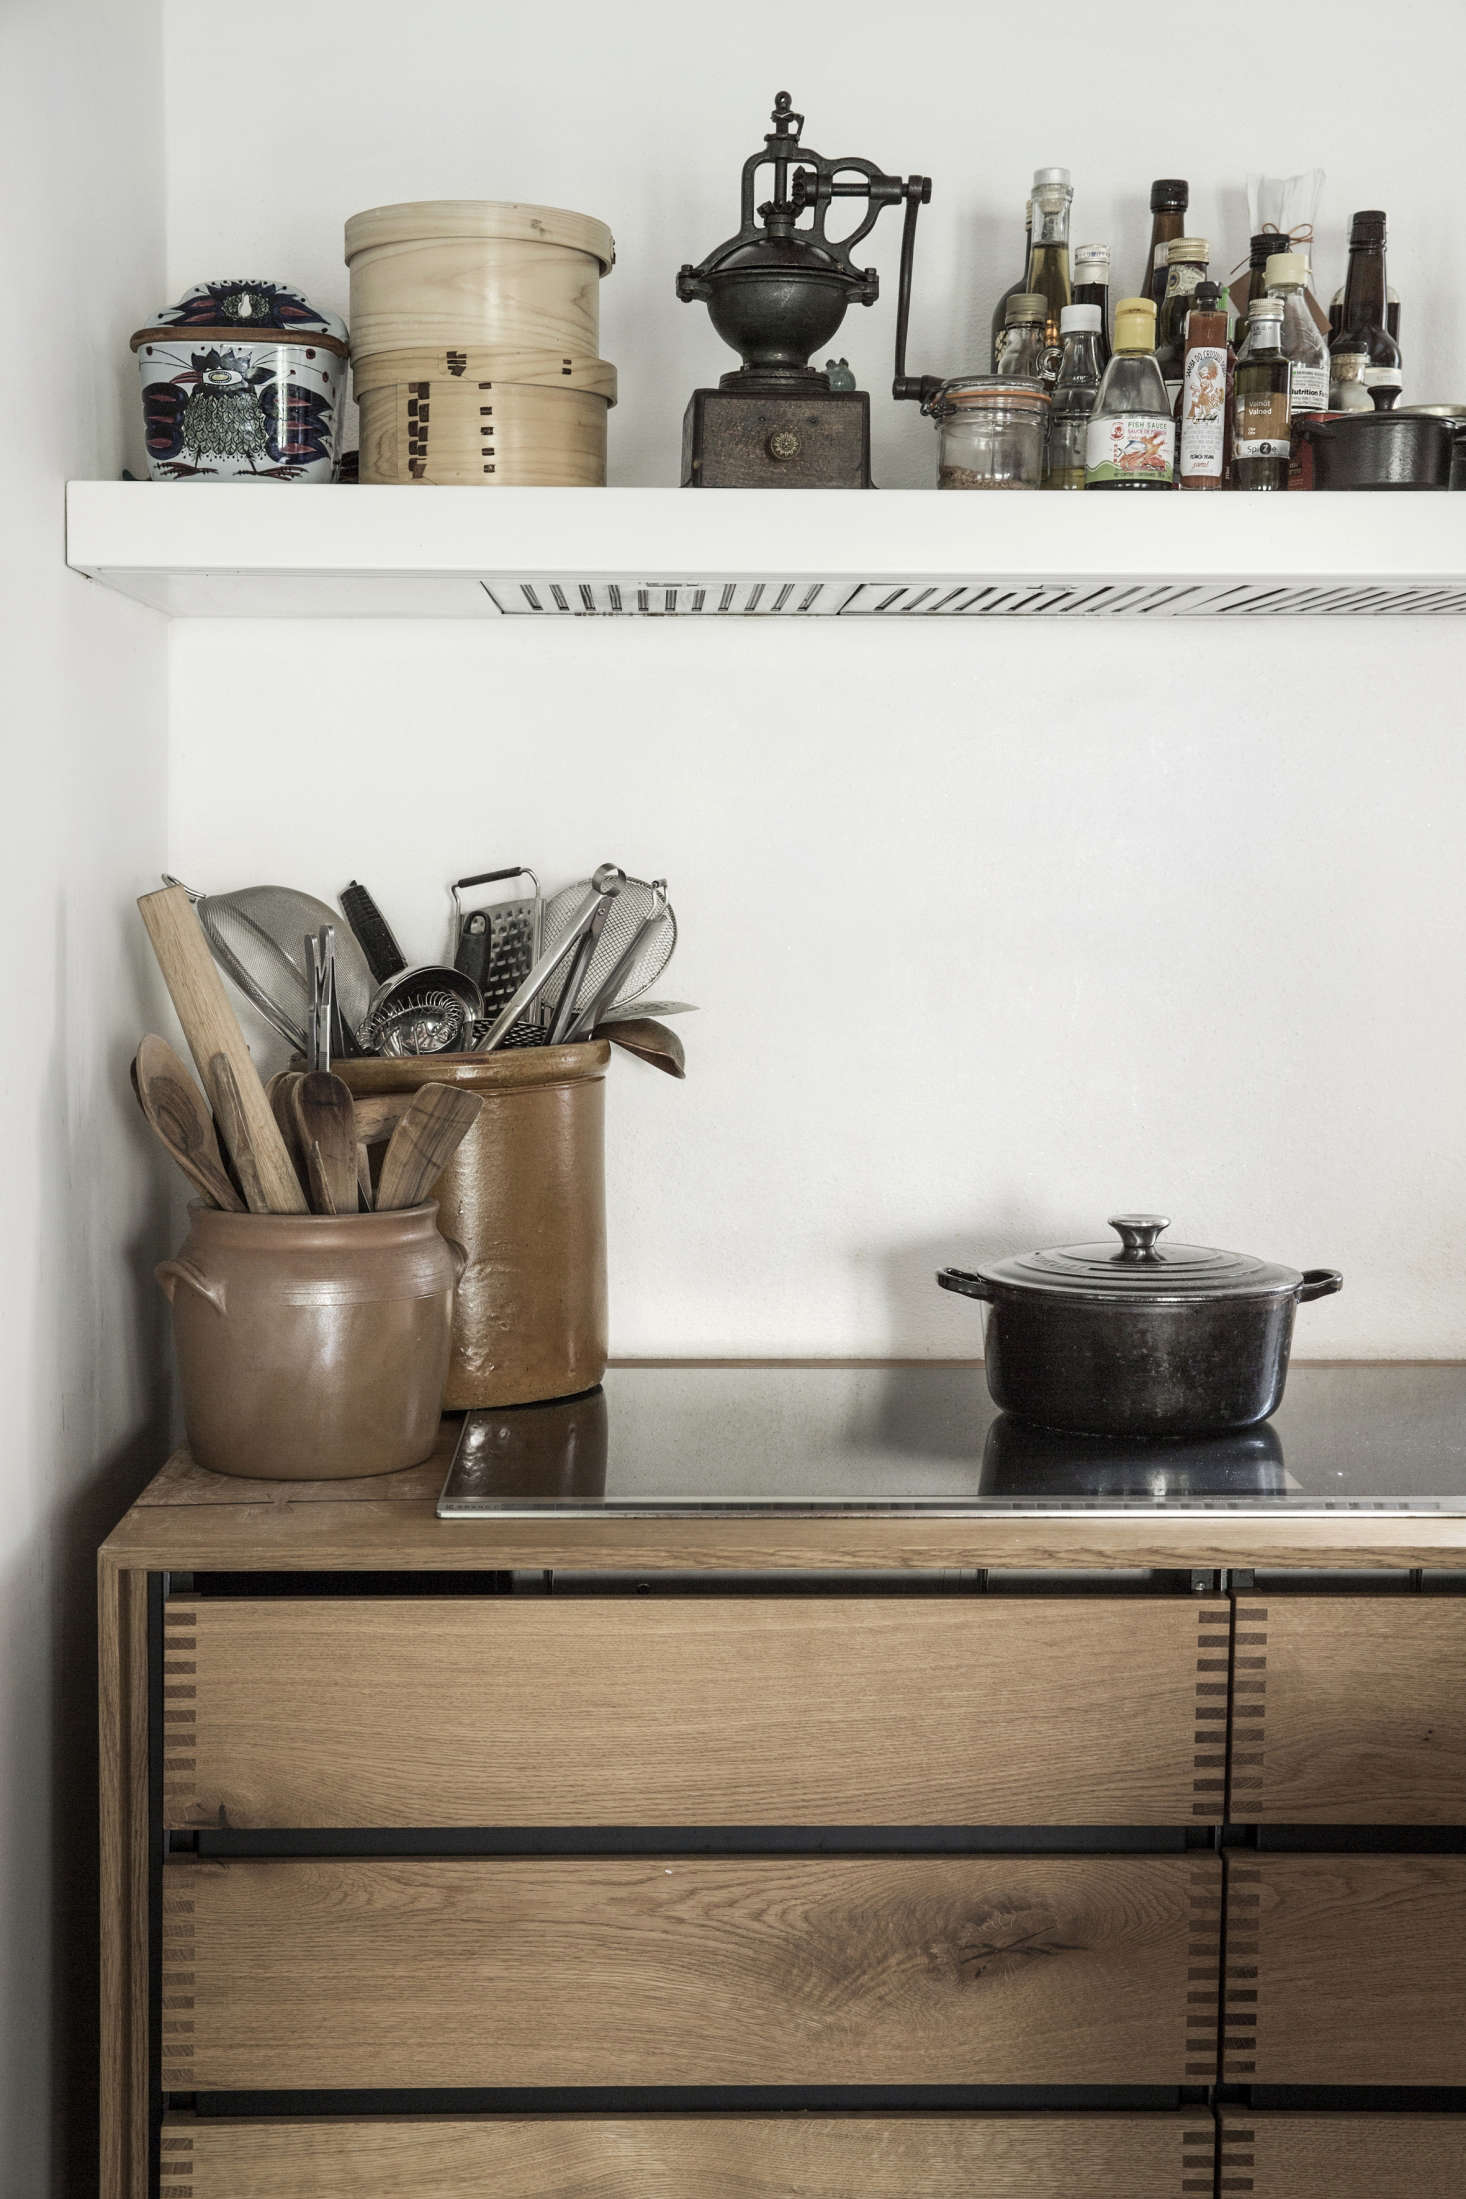 Large ceramic pots hold much-reached-for kitchen tools. Photograph courtesy ofDinesen.